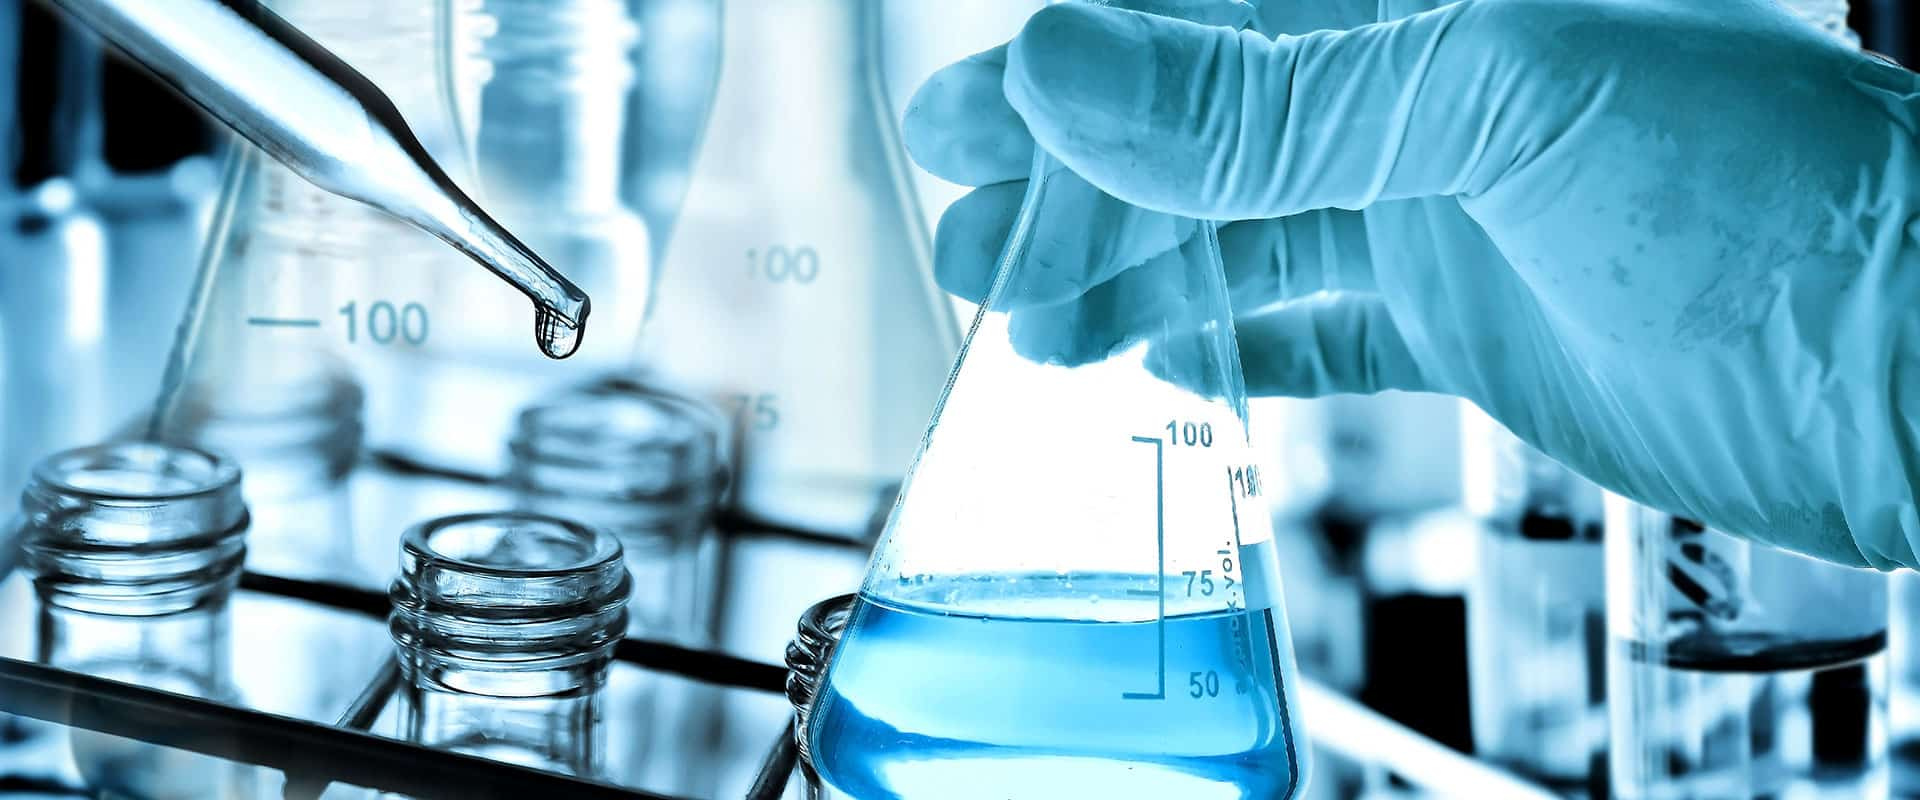 beakers test tubes droppers in lab